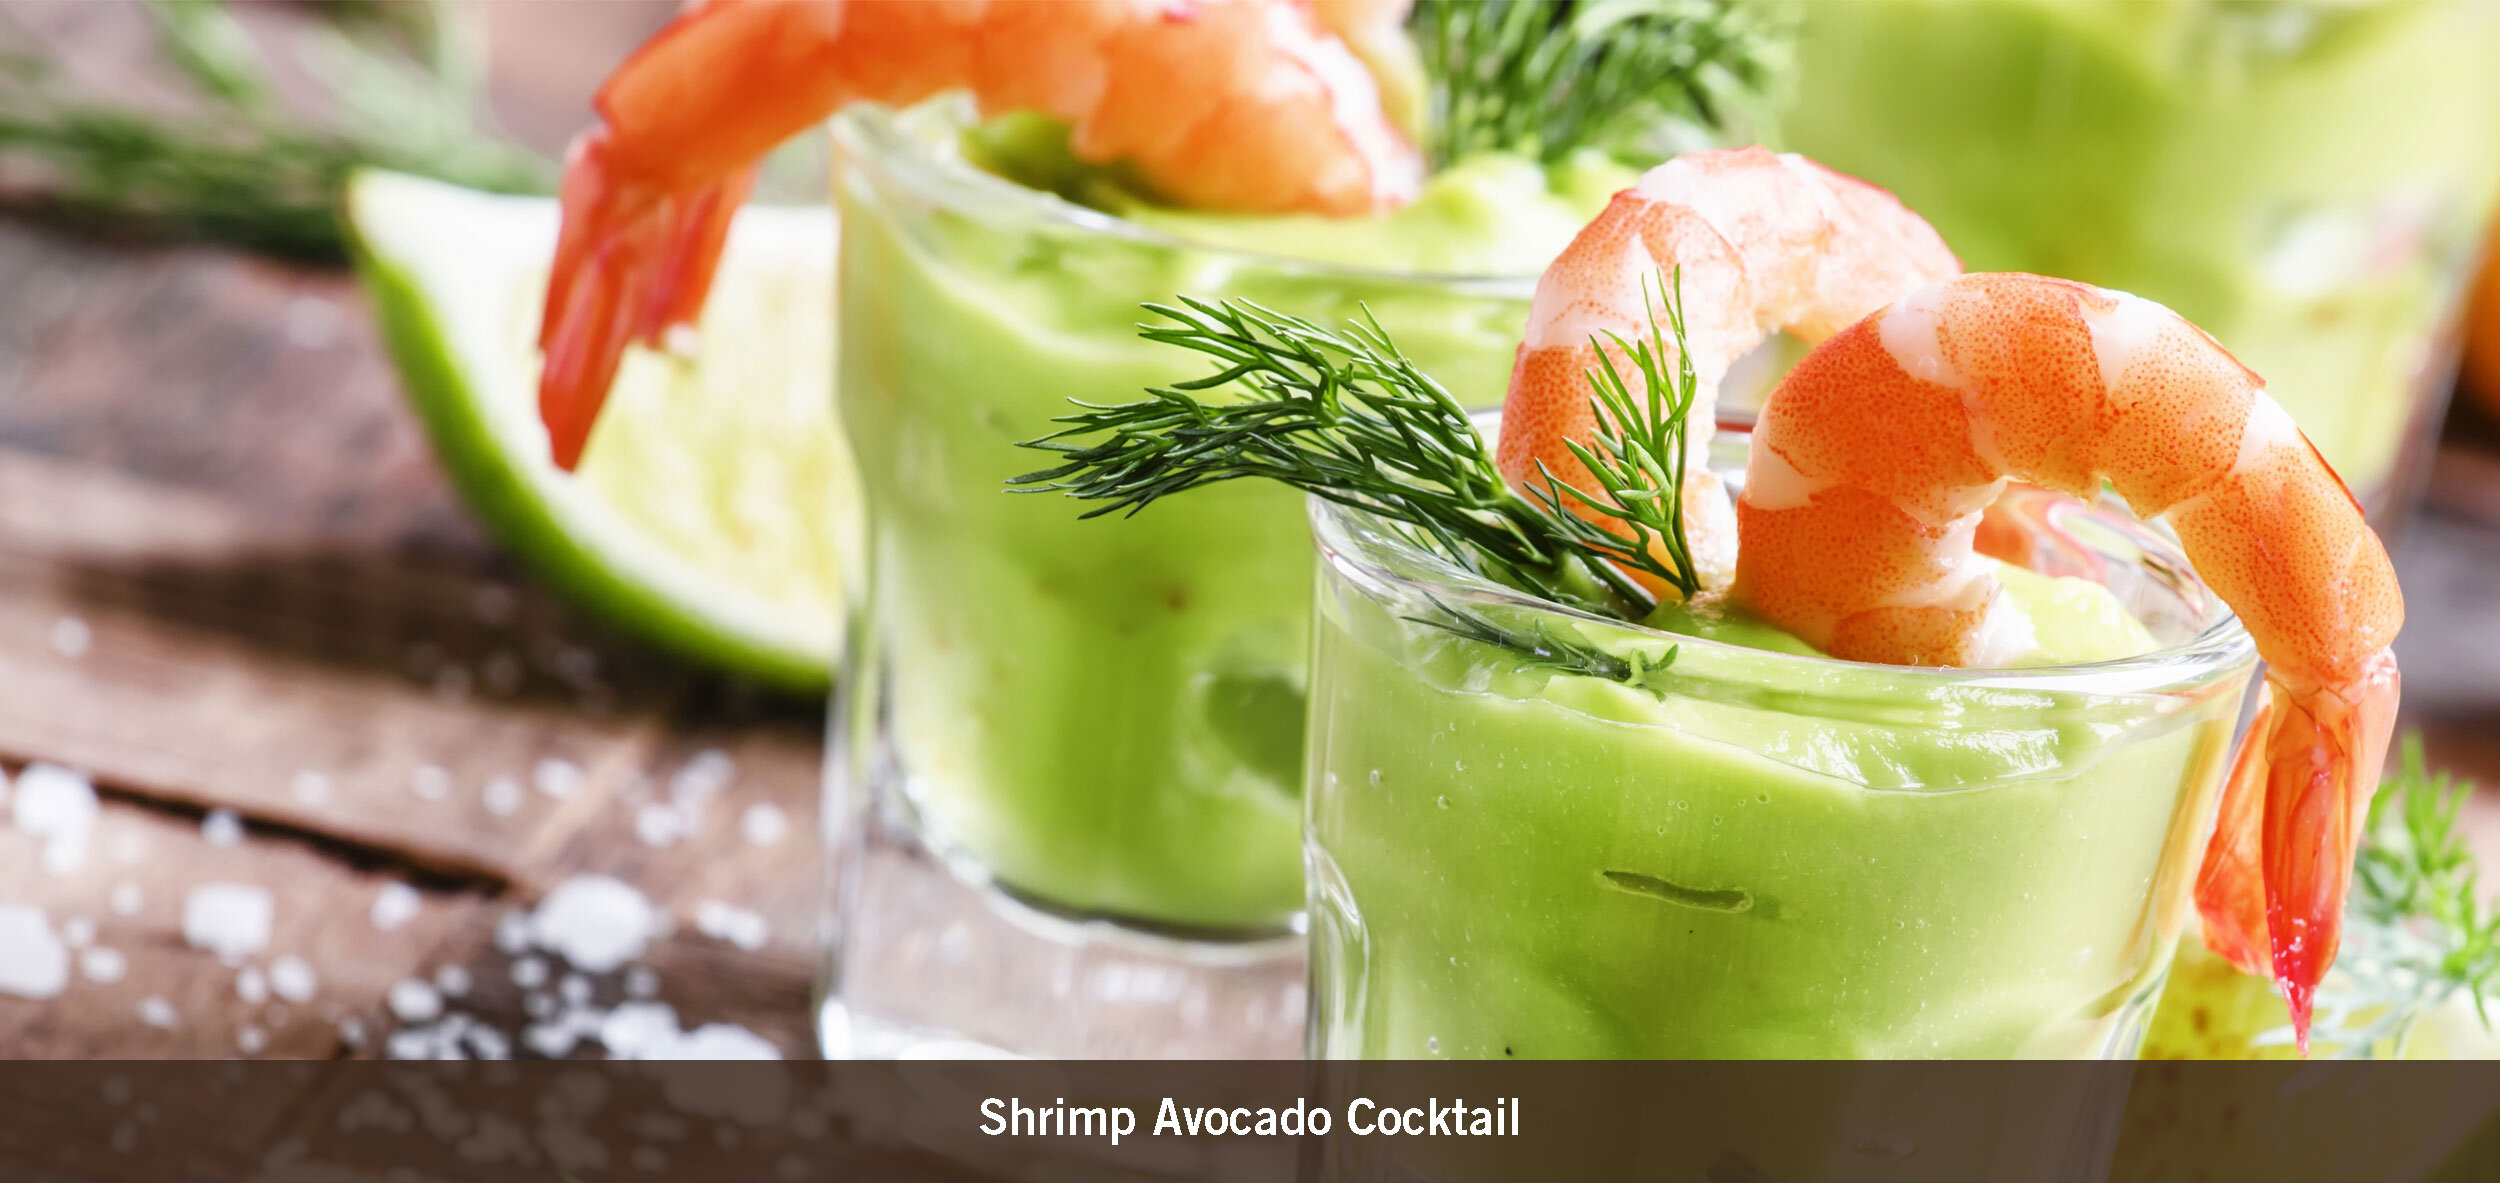 Shrimp Avocado Cocktail